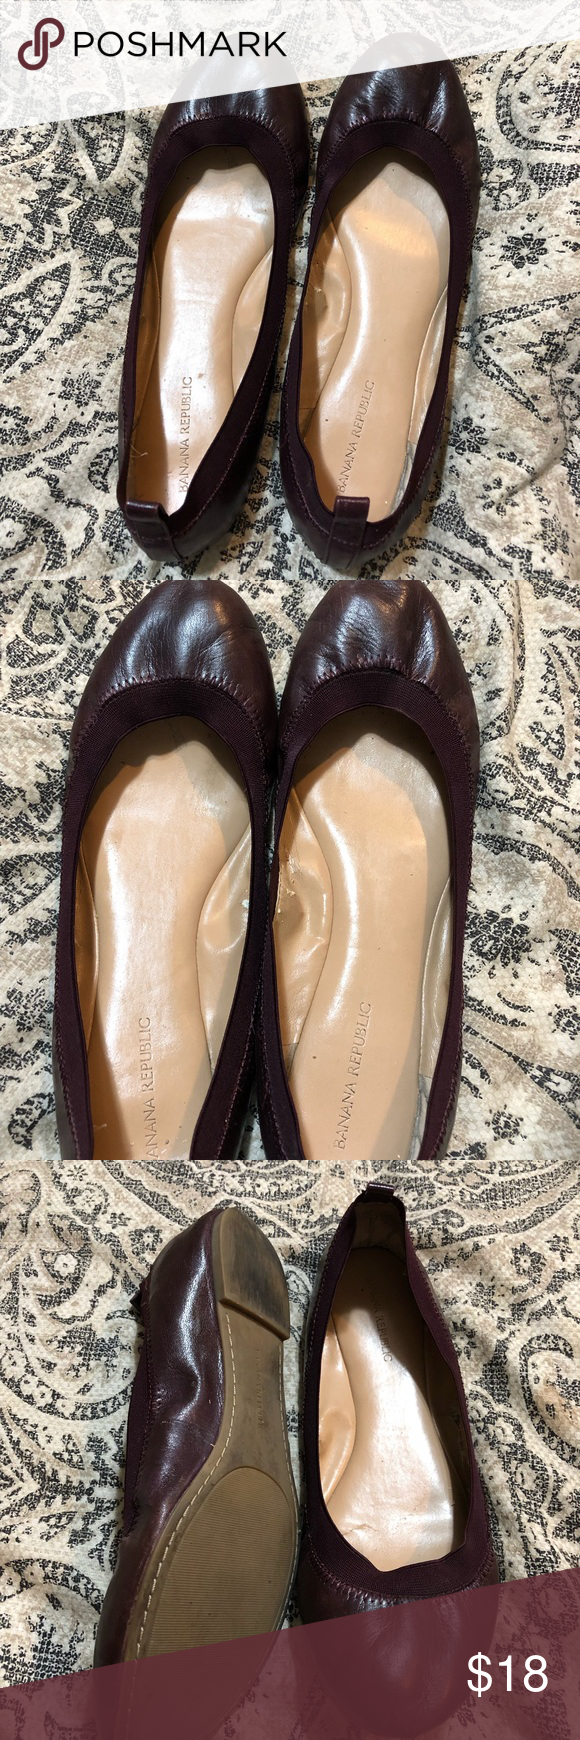 f07a8f5aad23 Banana Republic Leather Abby Flat in Oxblood Banana Republic Abby Leather  Ballet Flat in Oxblood.